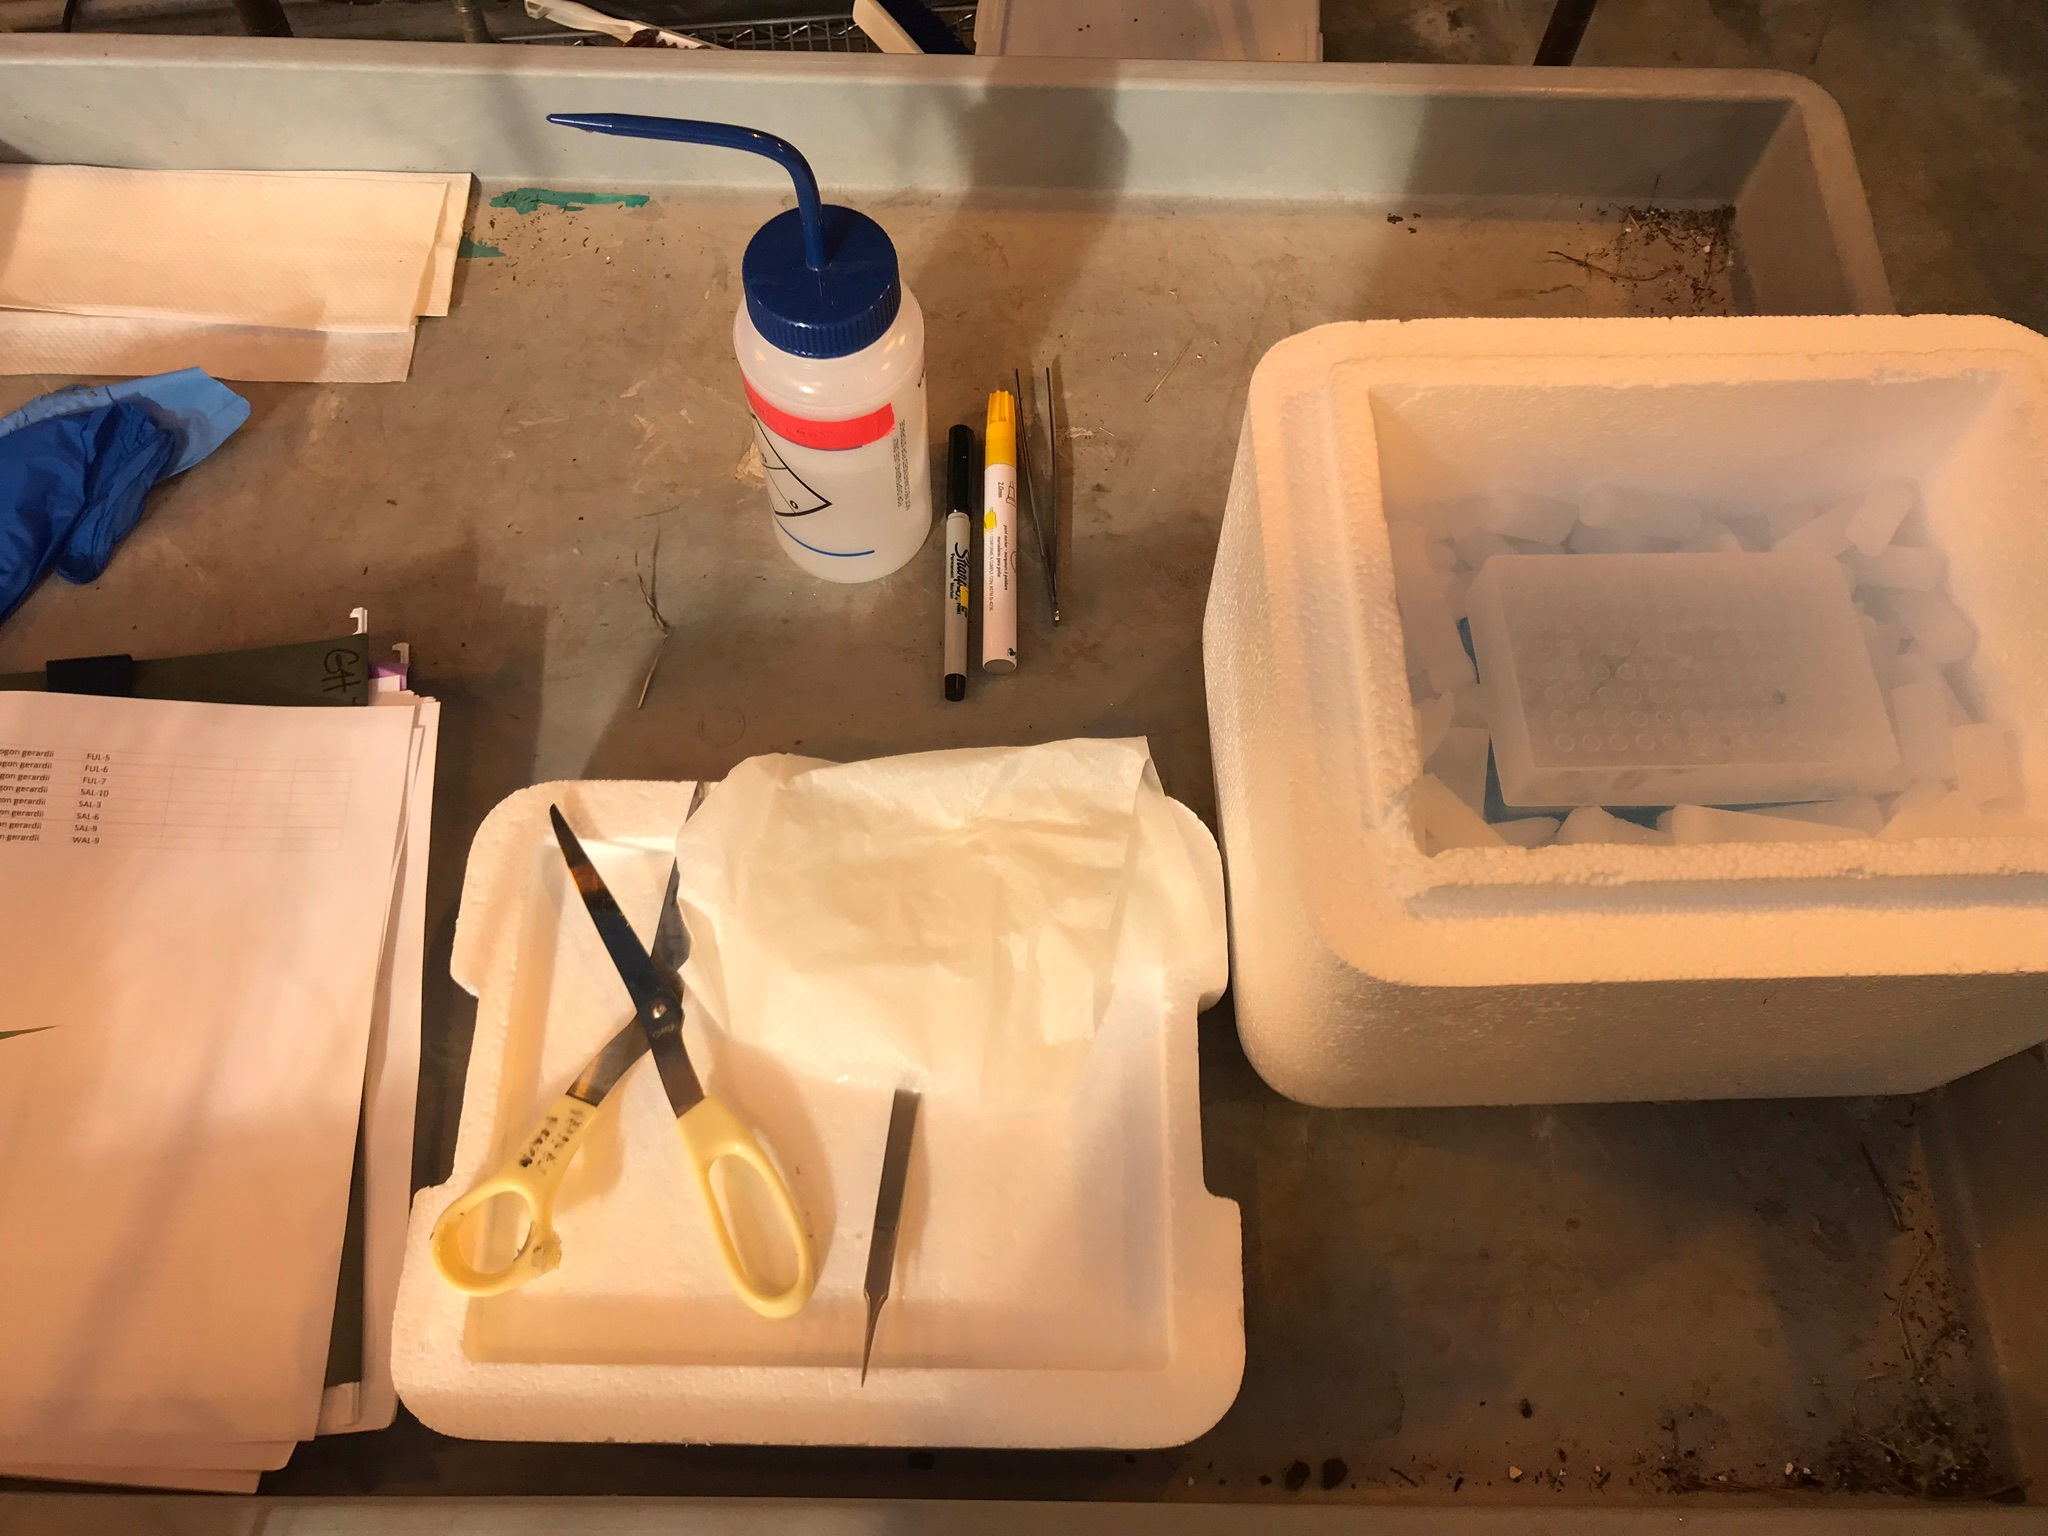 Clean scissors, forceps, and tube rack on dry ice for careful tissue collection